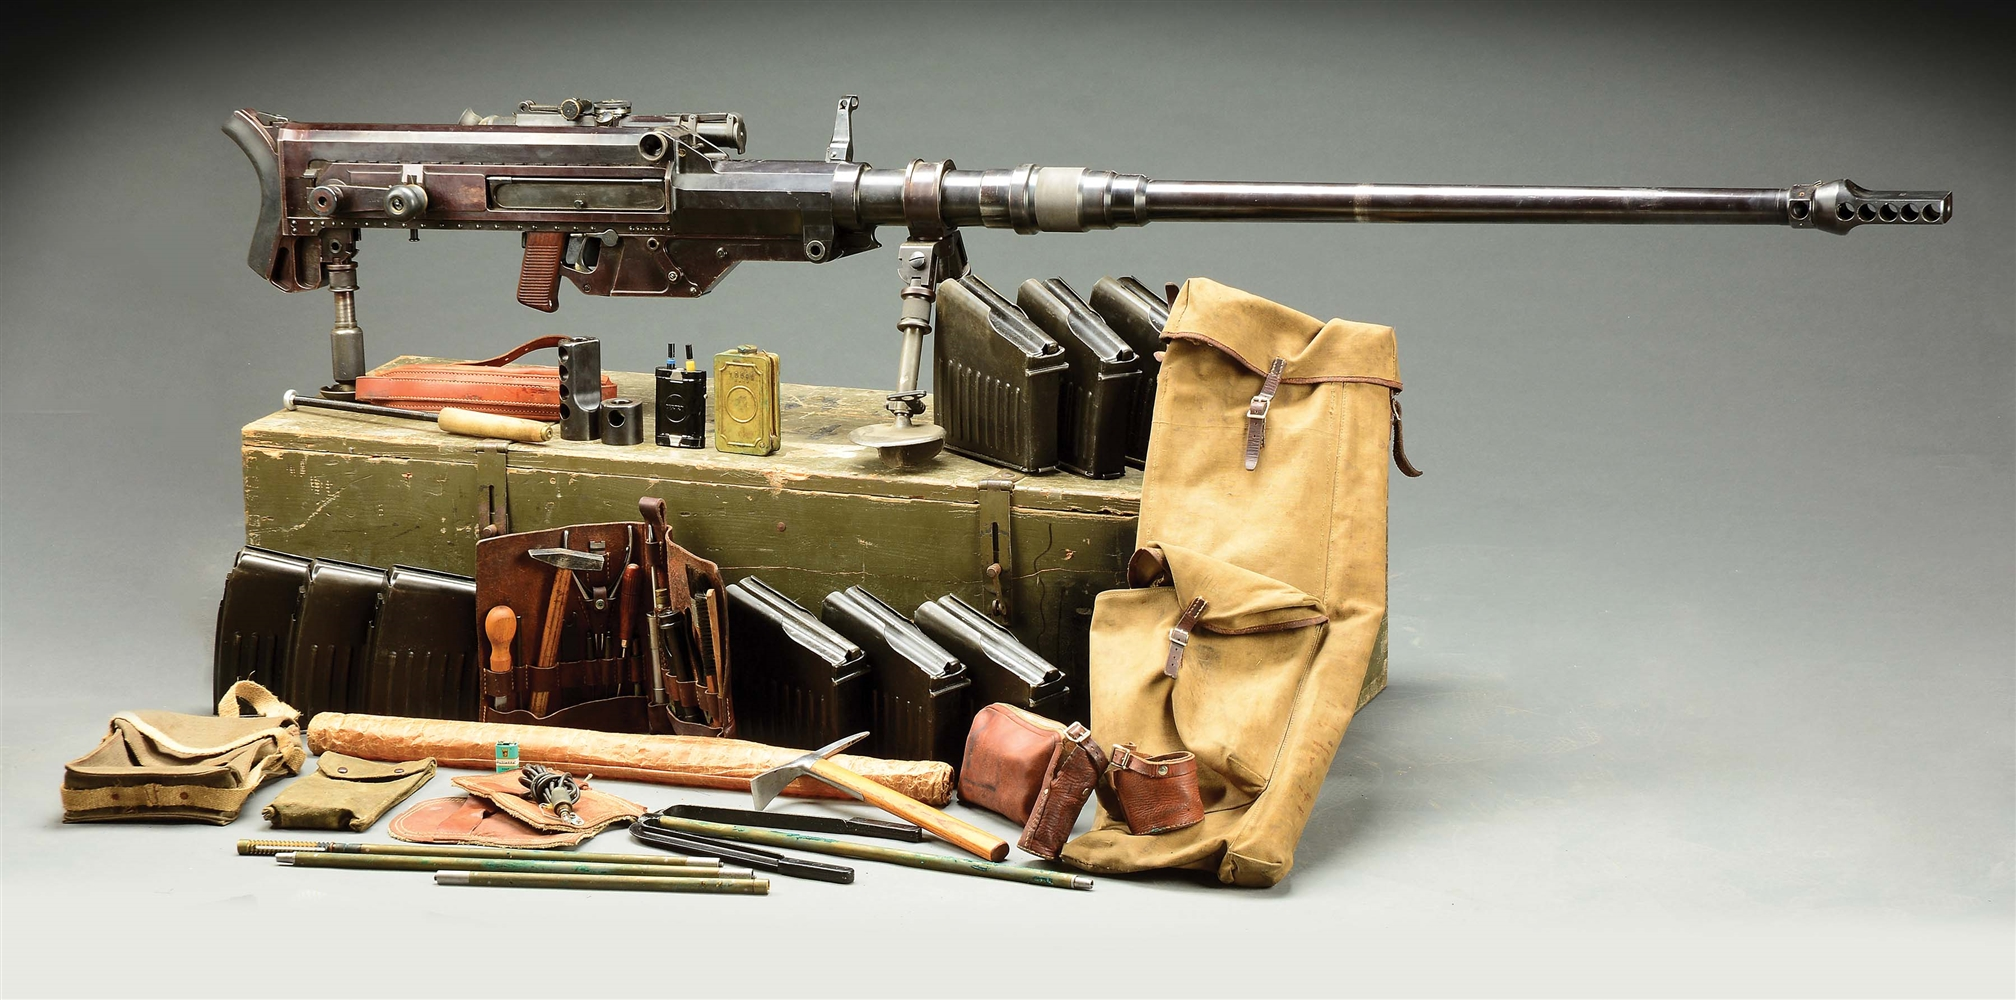 (D) ATTRACTIVE MATCHING SOLOTHURN S18-1000 ANTI-TANK RIFLE WITH CRATE AND GUNNERS ACCESSORIES KIT (DESTRUCTIVE DEVICE).